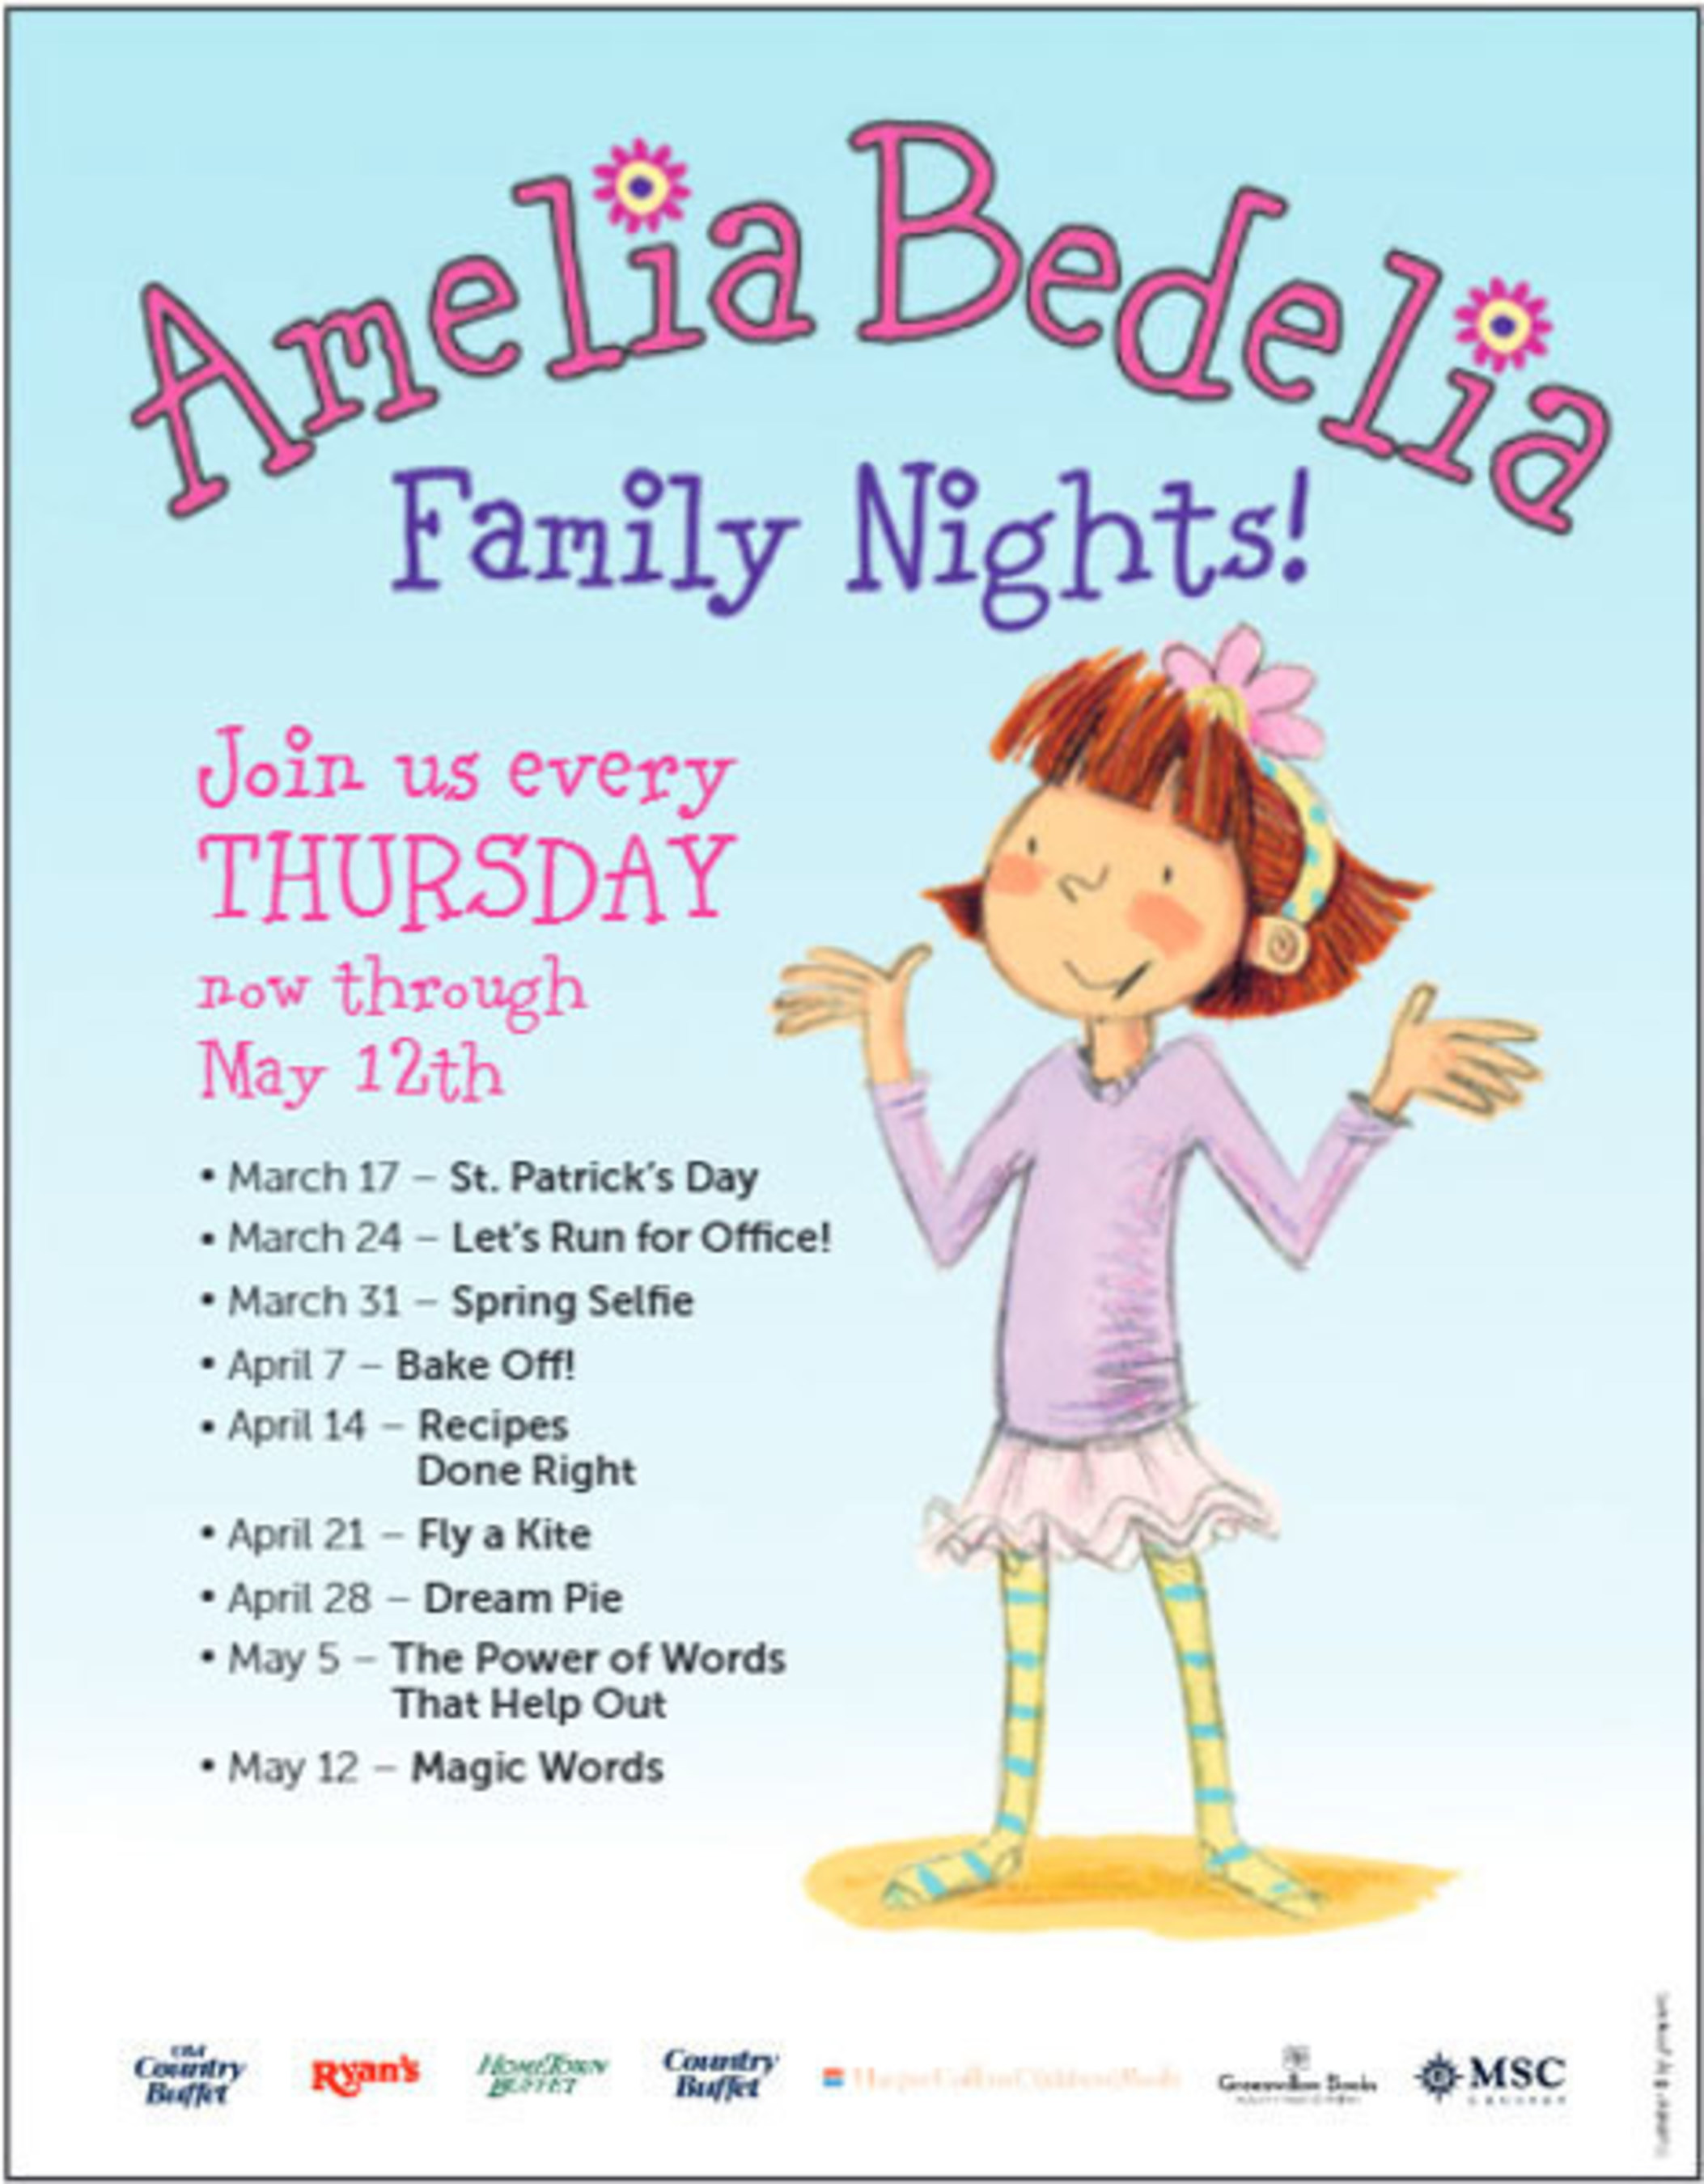 Family Nights featuring Amelia Bedelia themed activities.